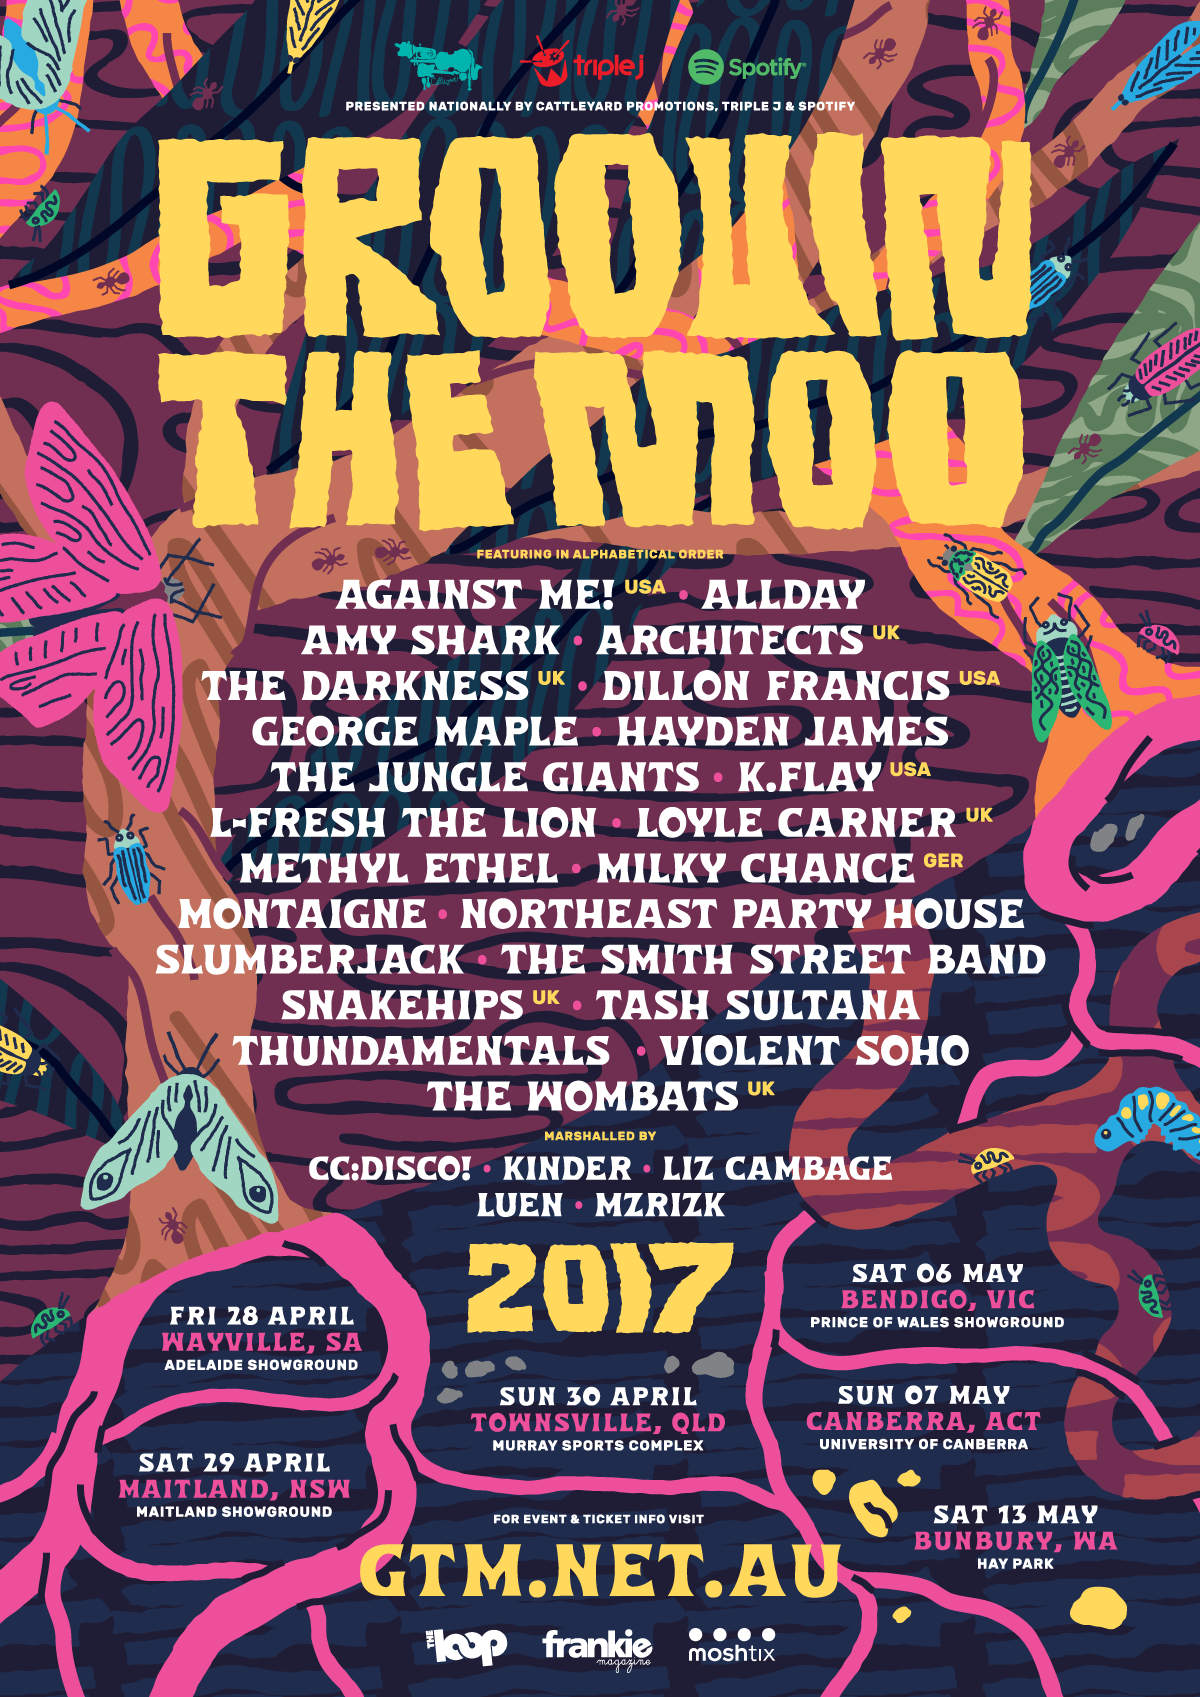 GTM 2017 Poster Artwork